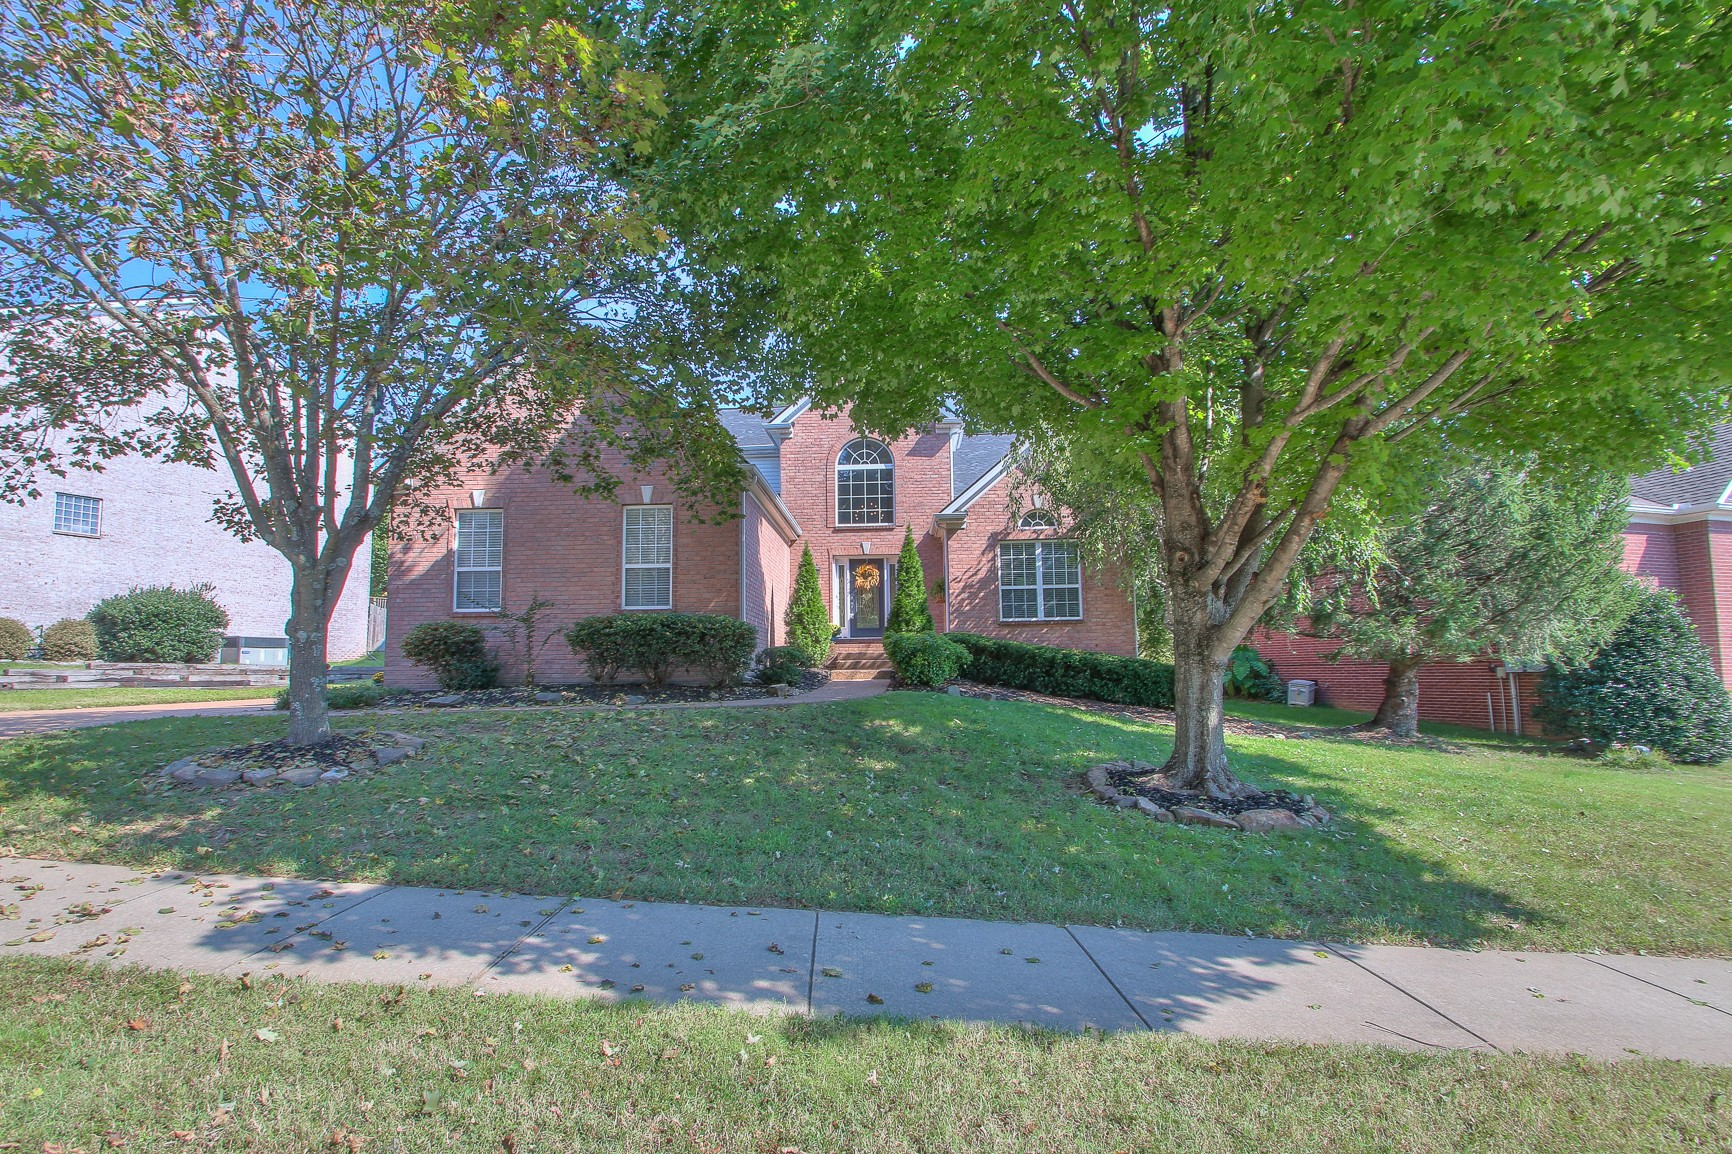 Open flowing Master Down plan with vaulted first floor ceilings ~ Granite Tops ~ Solid Hardwood flooring ~ Newer Carpet ~ Side entry Garage ~ Private Fenced Back yard with cool Patio  ~ Newer Carpet ~ Newer Water Heater ~ Brand New Roof ~ A+ McKays Mill Amenities ~ Incredible Cool Springs location in the Towne Park section of McKays Mill !